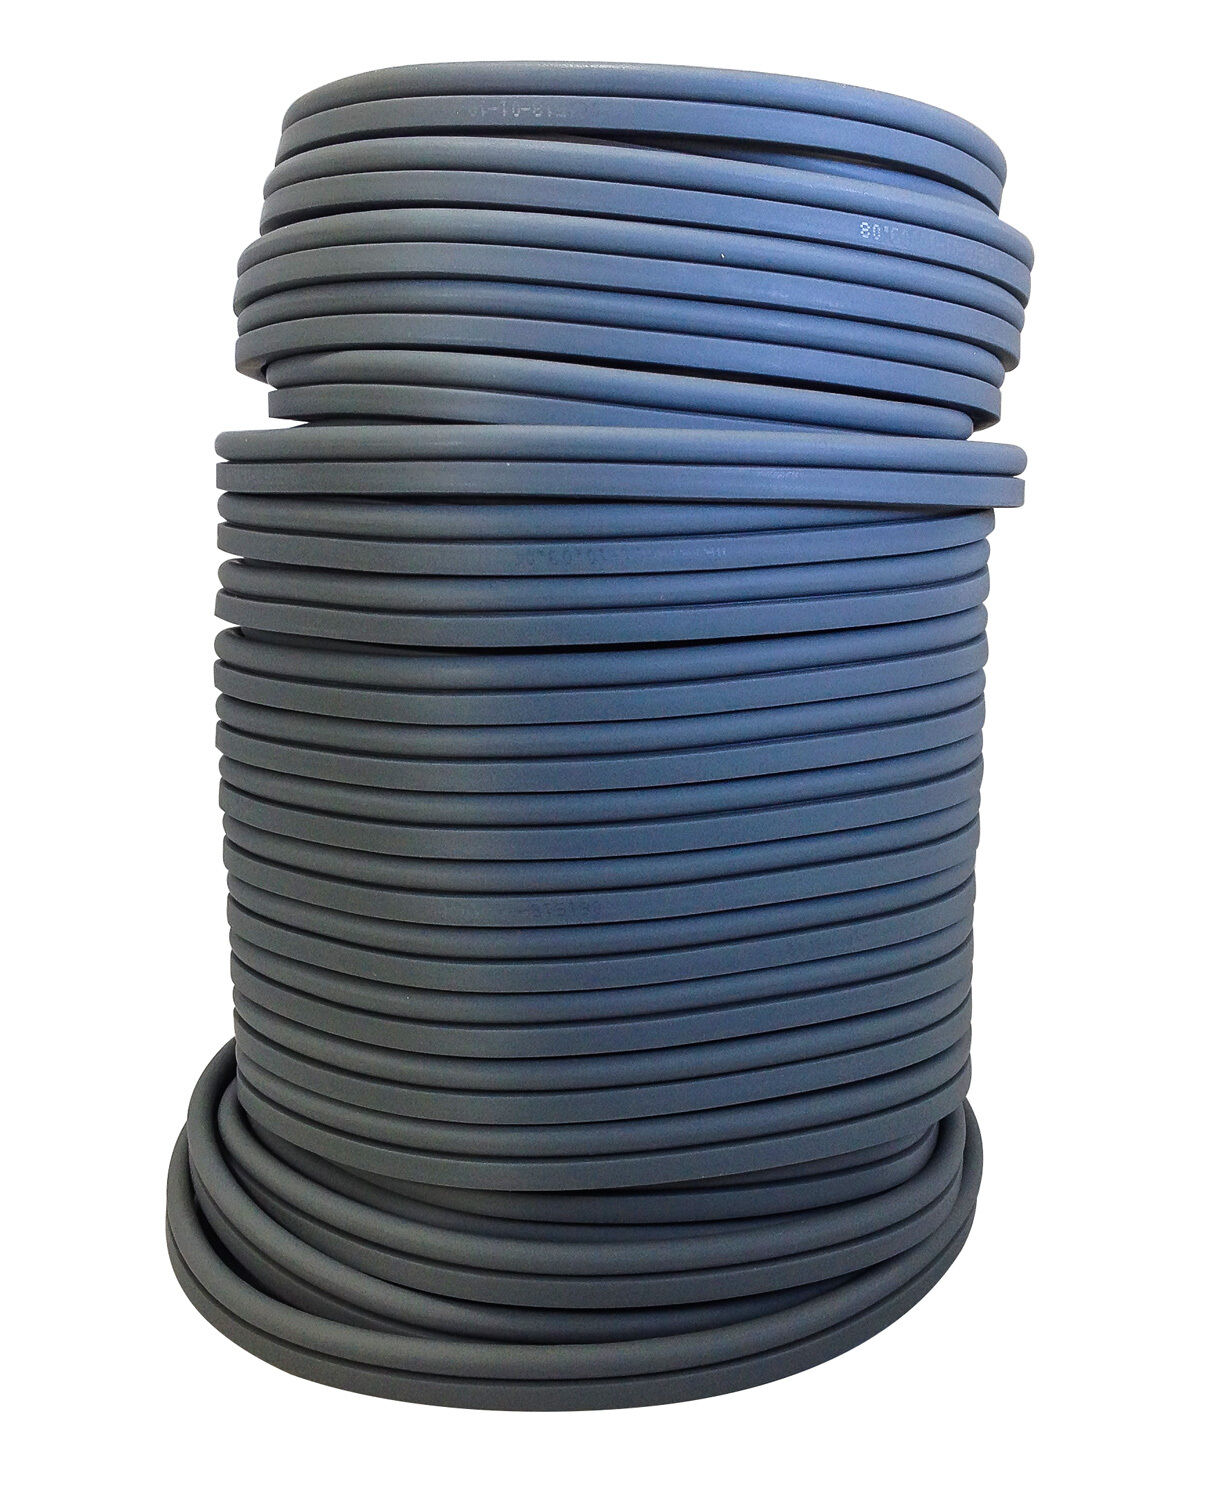 Monster Cable High Performance 14 Gauge Speaker Wire w/ EZ Strip ...